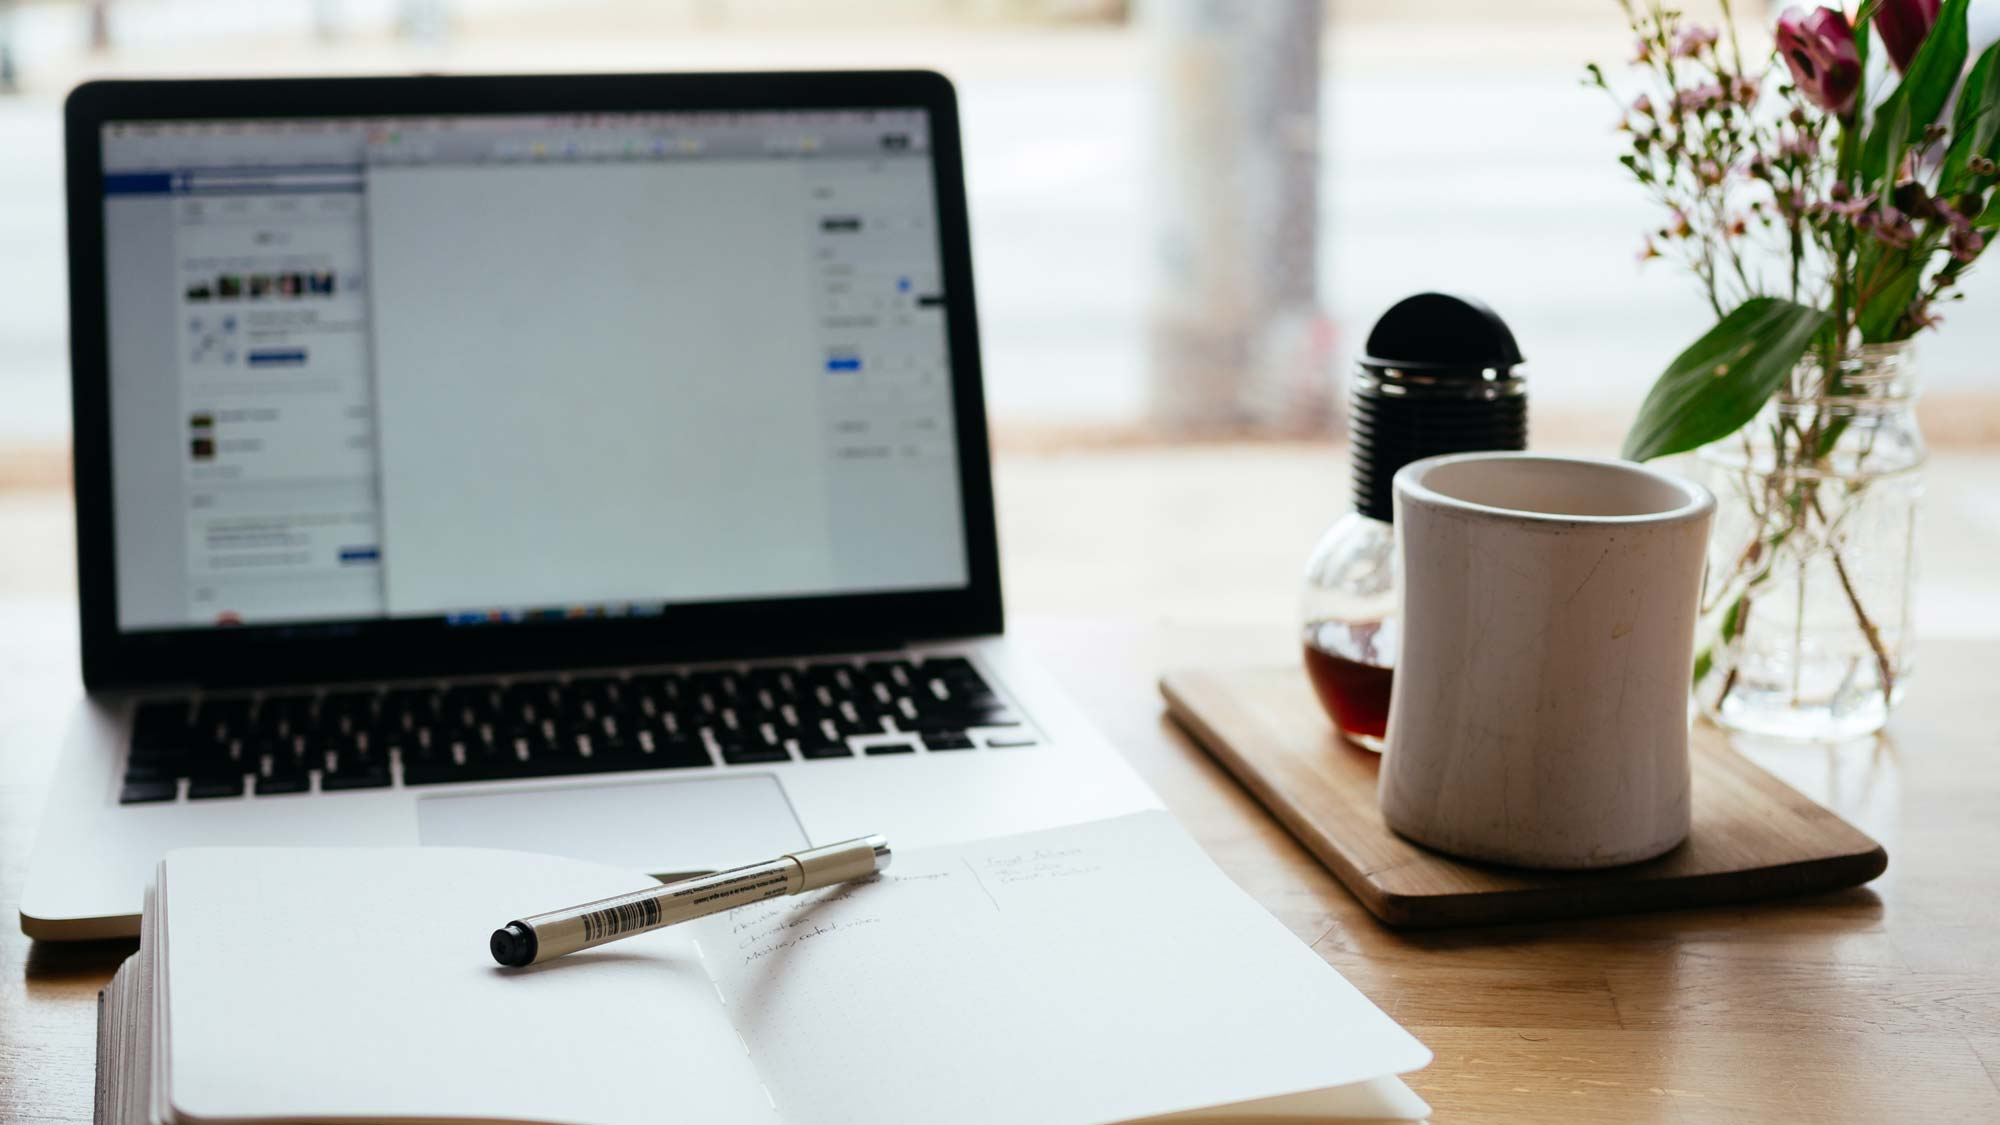 Journal, computer and coffee--all the tools to start writing! Photo by Nick Morrison on Unsplash